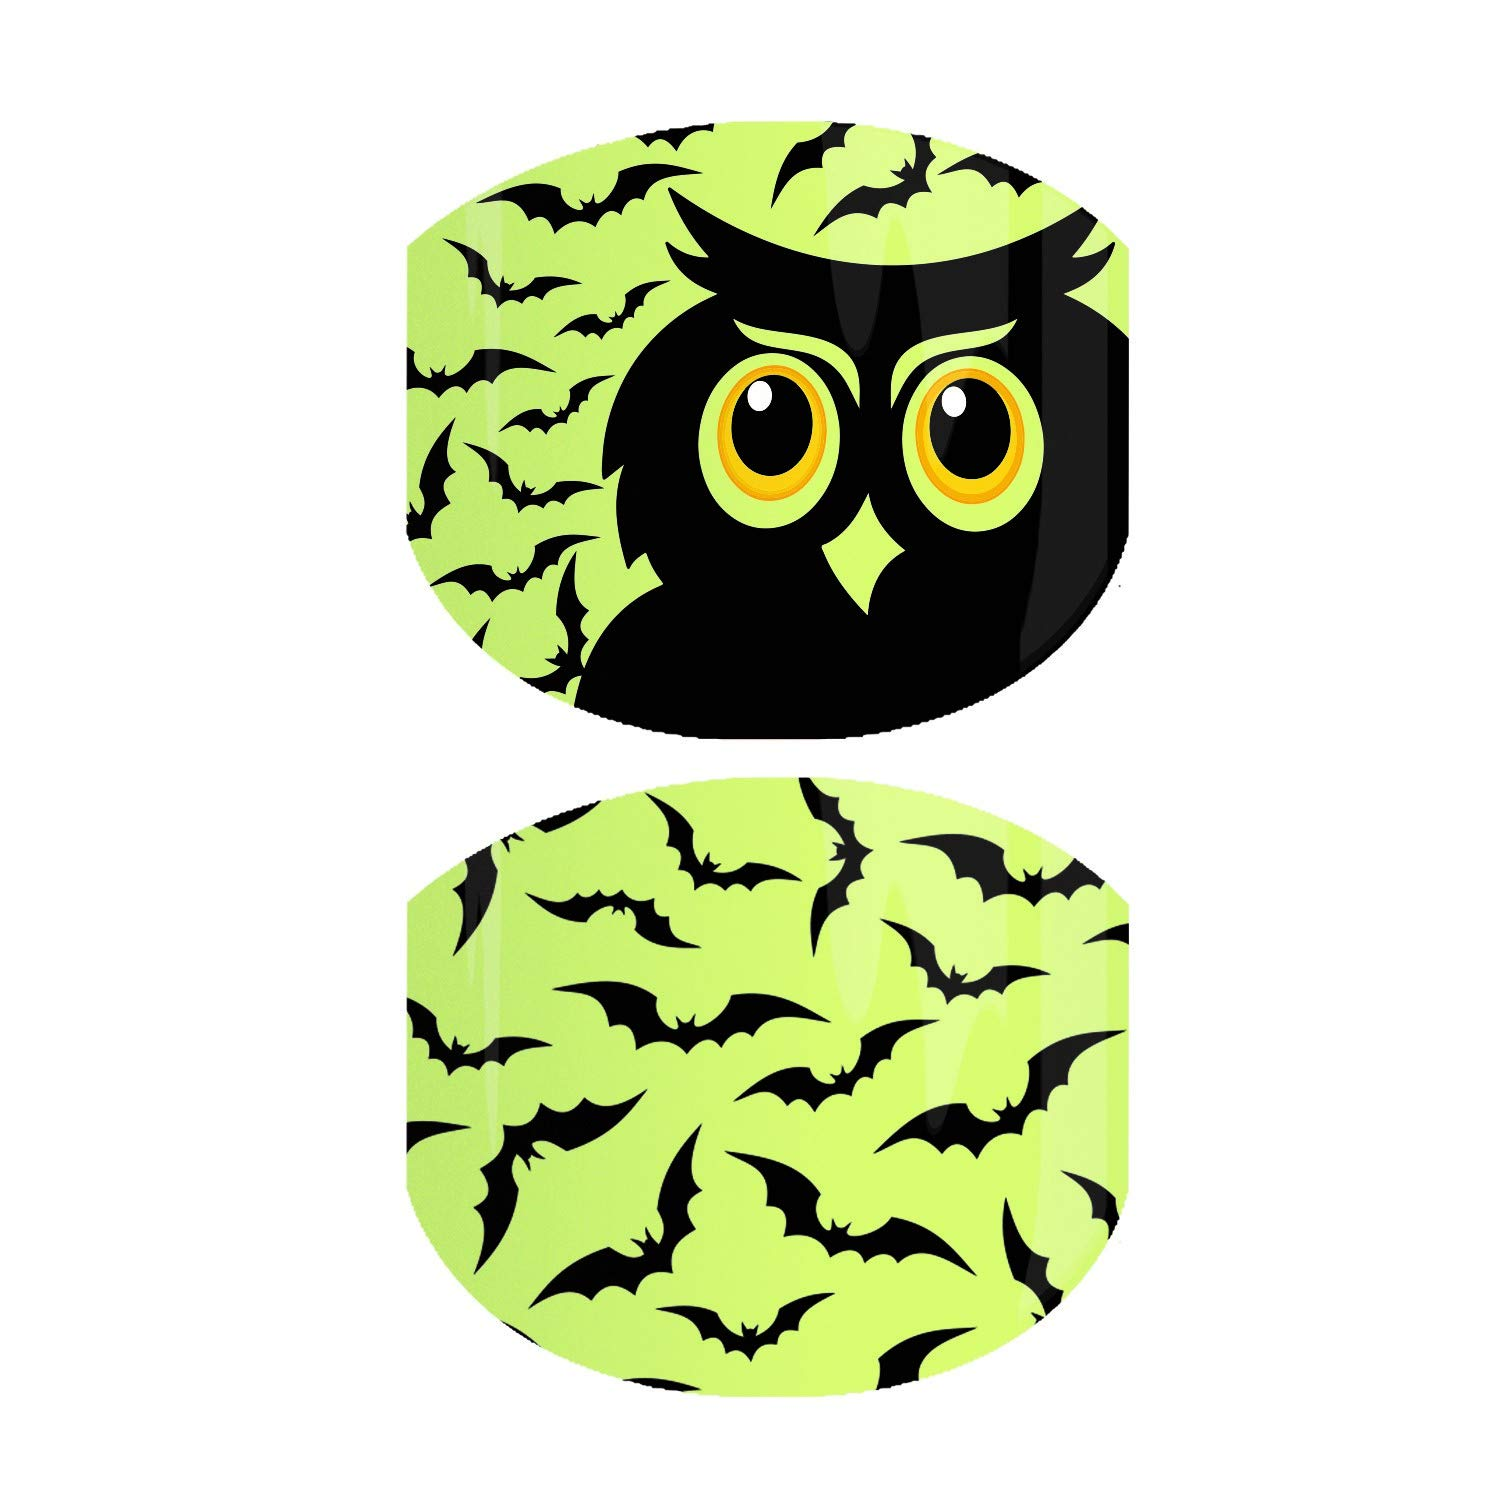 Jamberry Nail Wraps - Going Batty JR - Haloween Fall 2019 - Juniors Sizing Full Sheet - Limited Edition by Generic